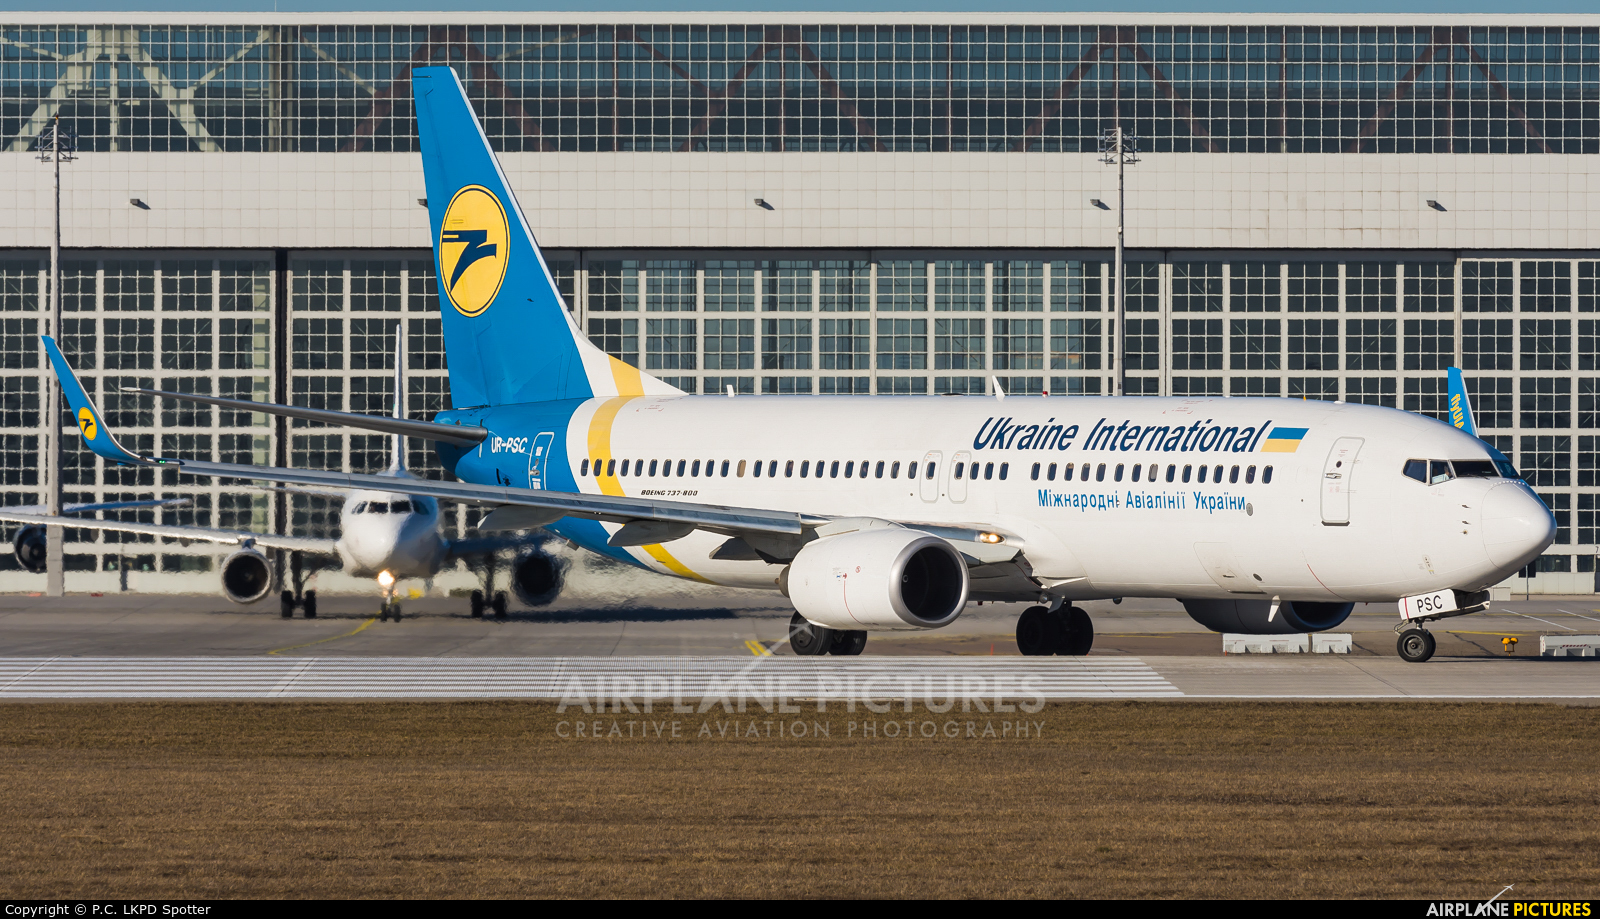 Ukraine International Airlines UR-PSC aircraft at Munich